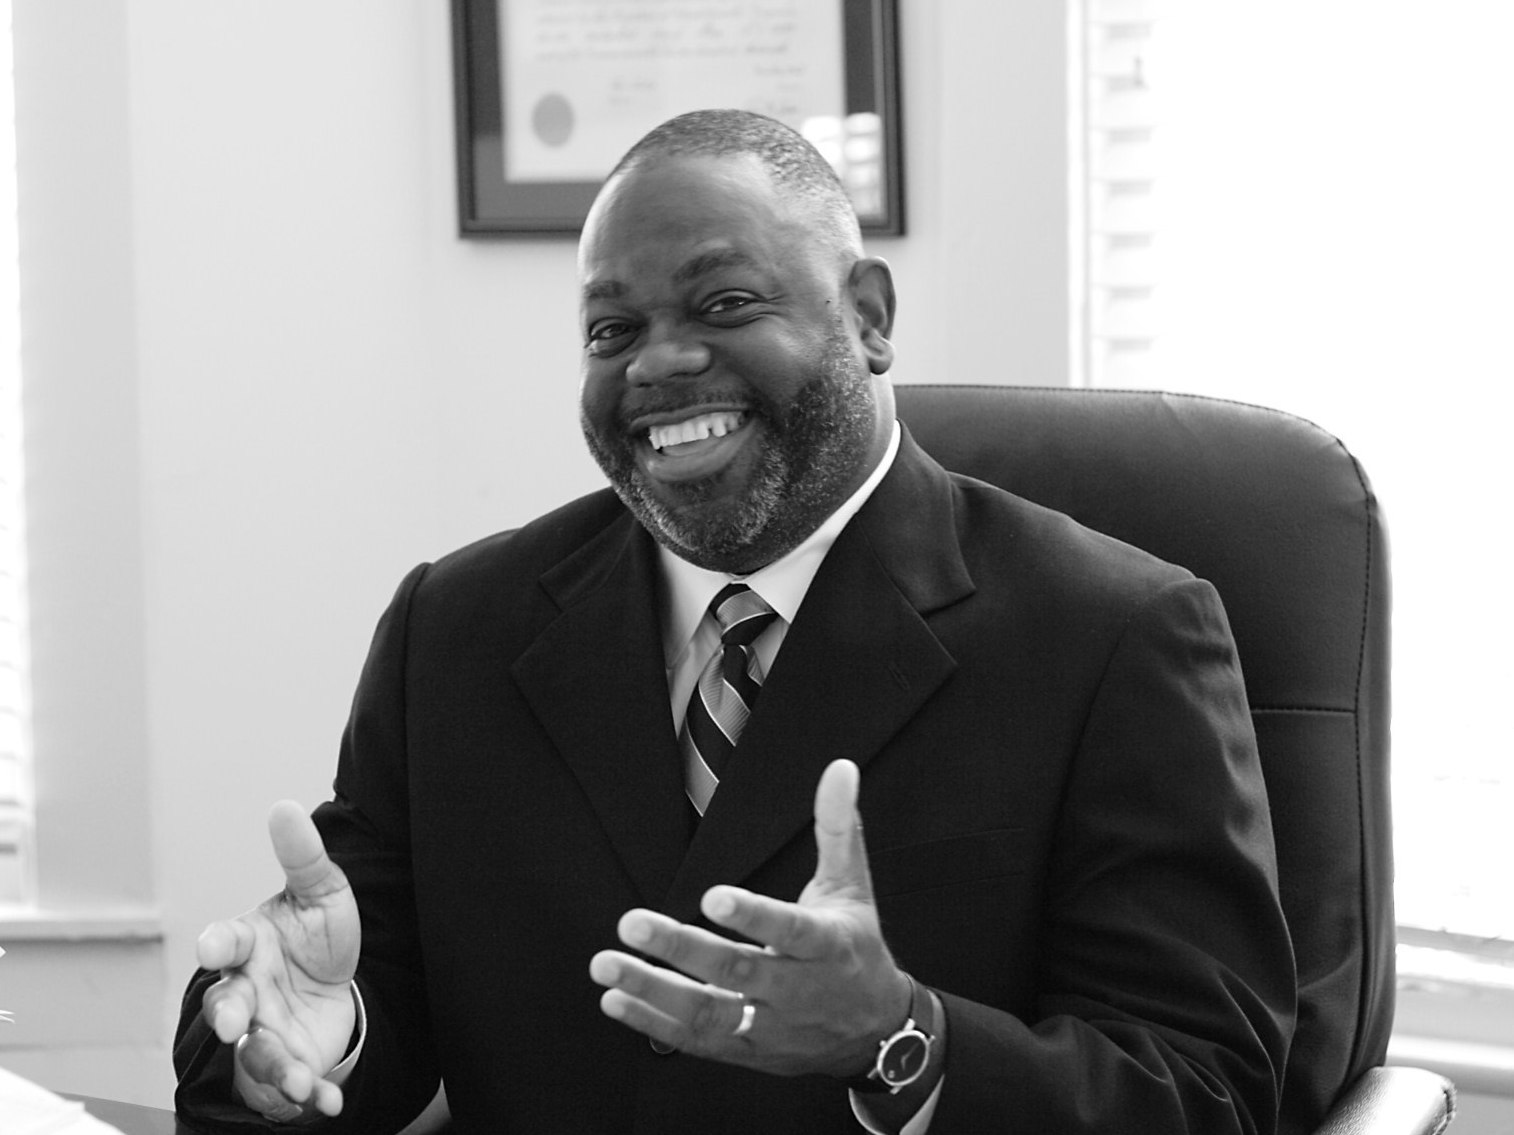 The Man Behind The Speech: Judge Carlton Reeves Takes On Mississippi's Past